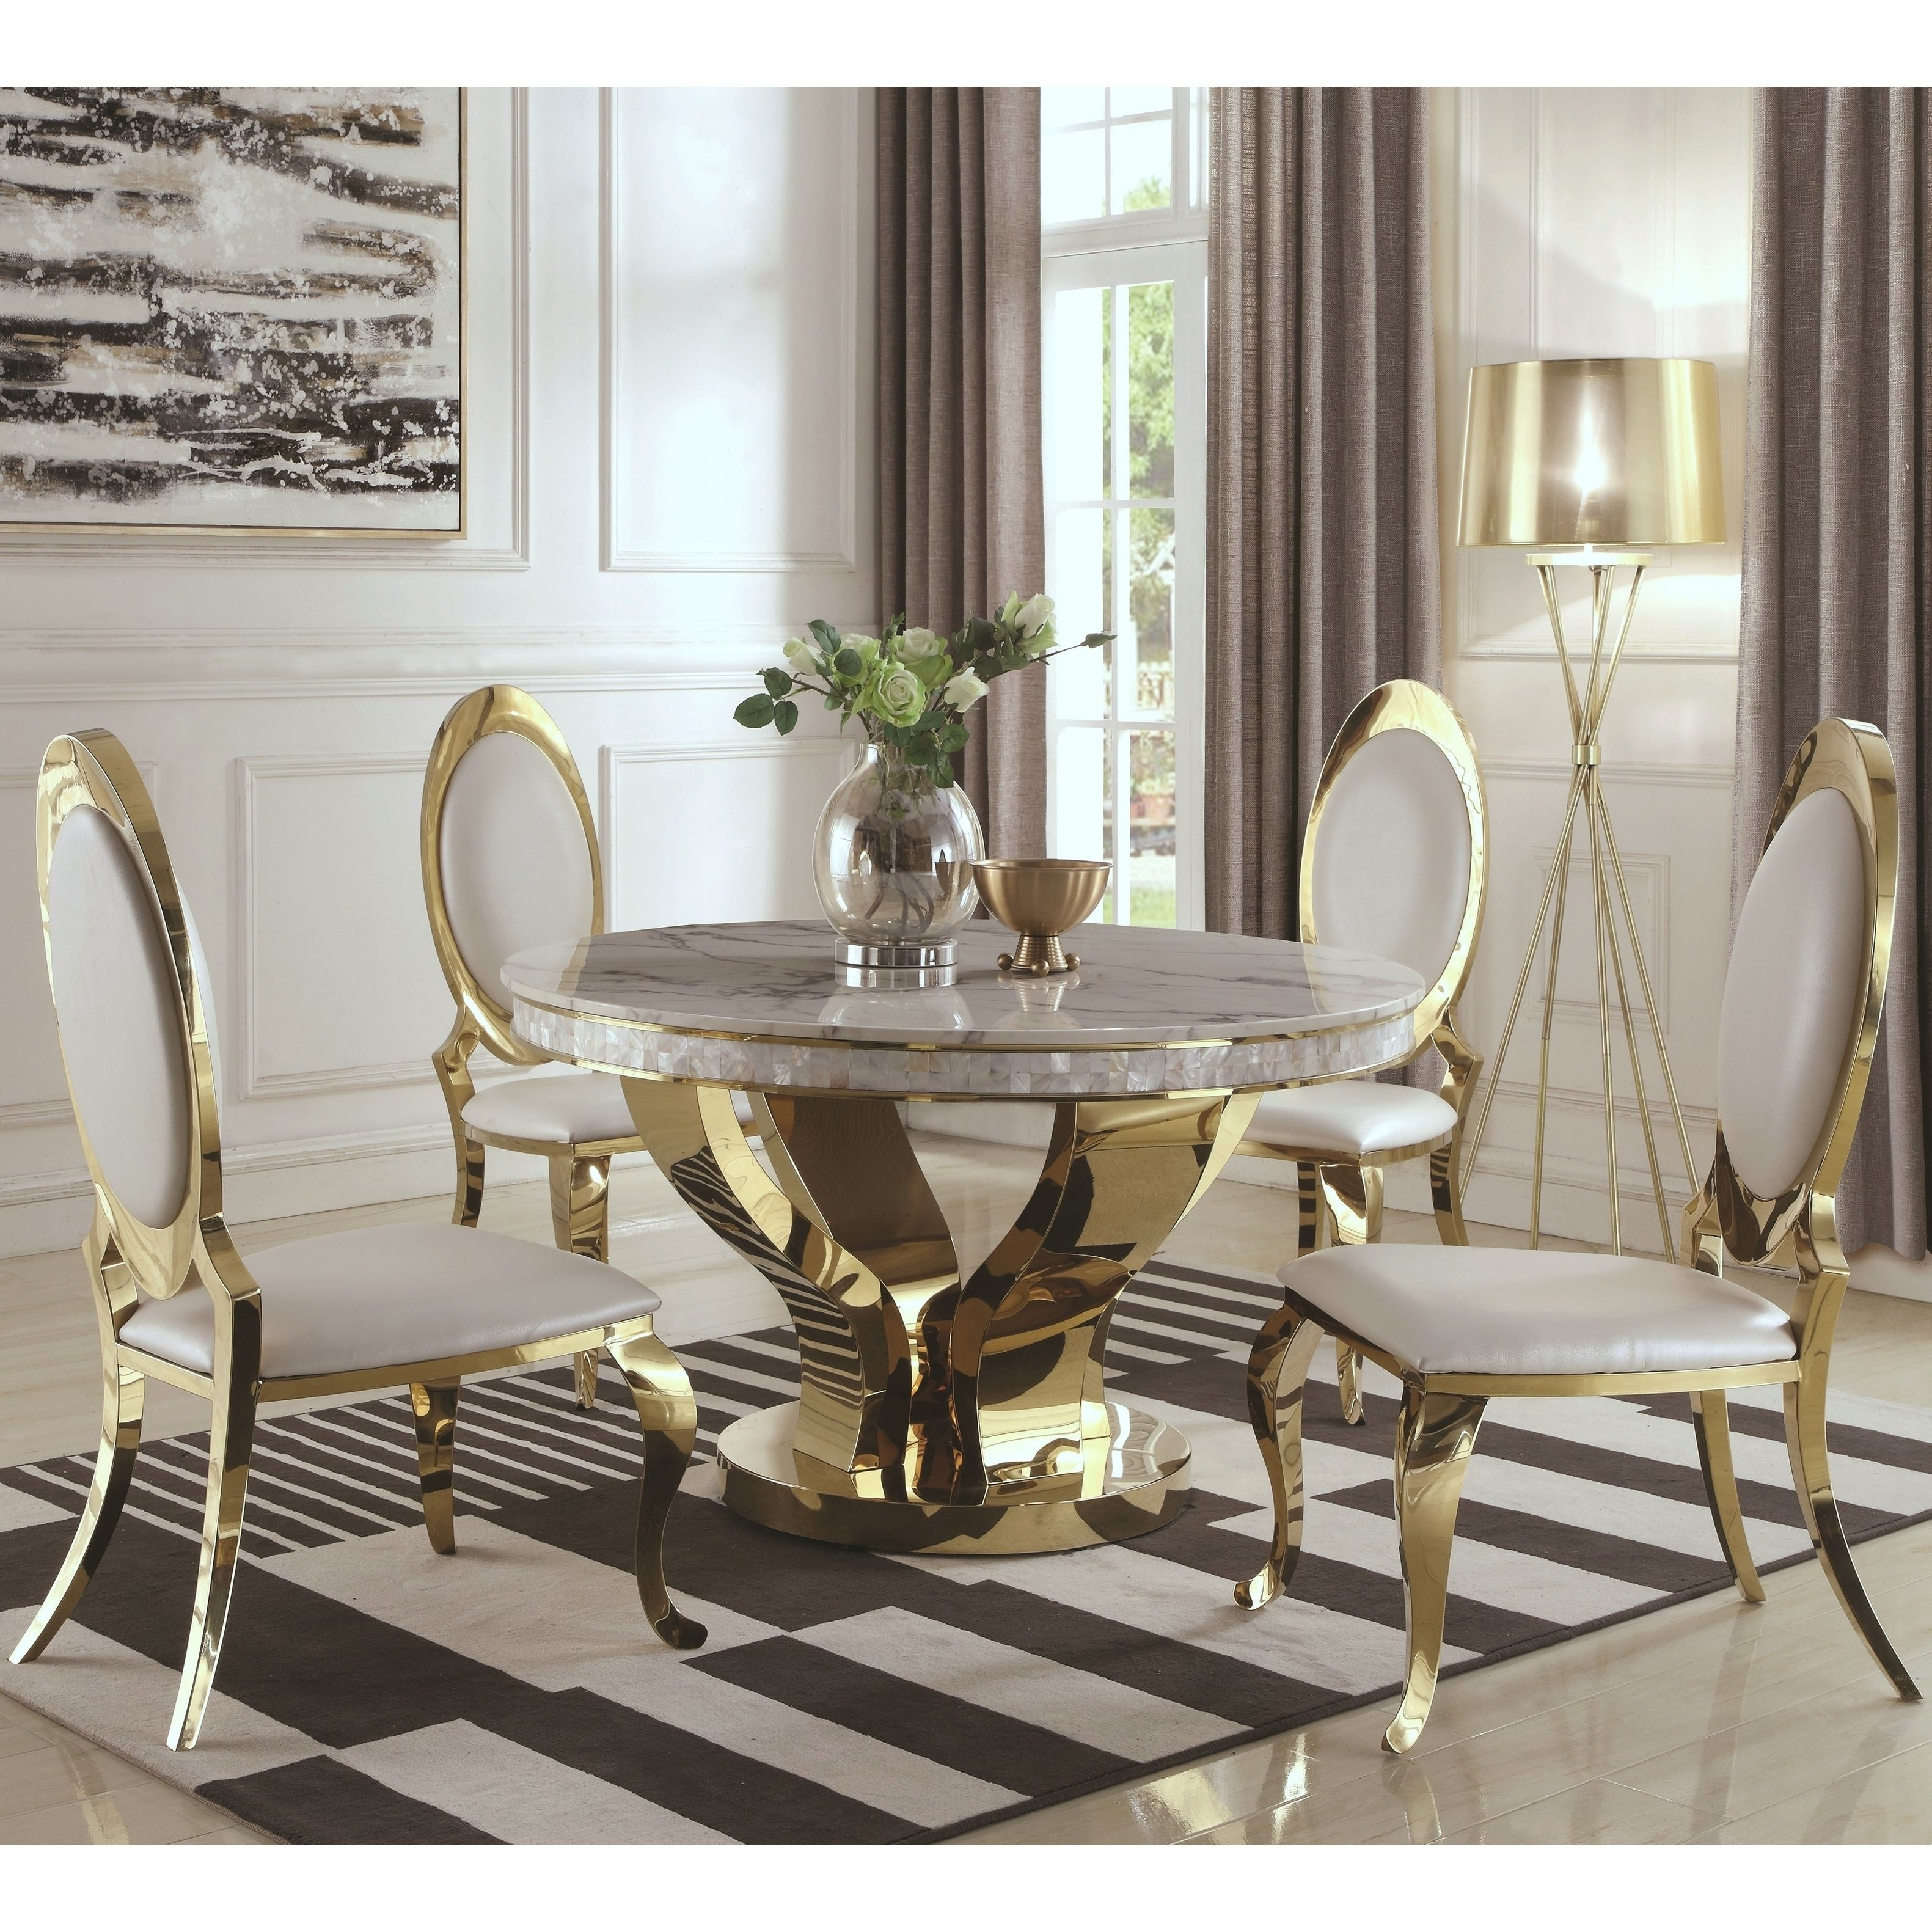 Luxurious Modern Design 5 Piece Gold Dining Set With Marble Table